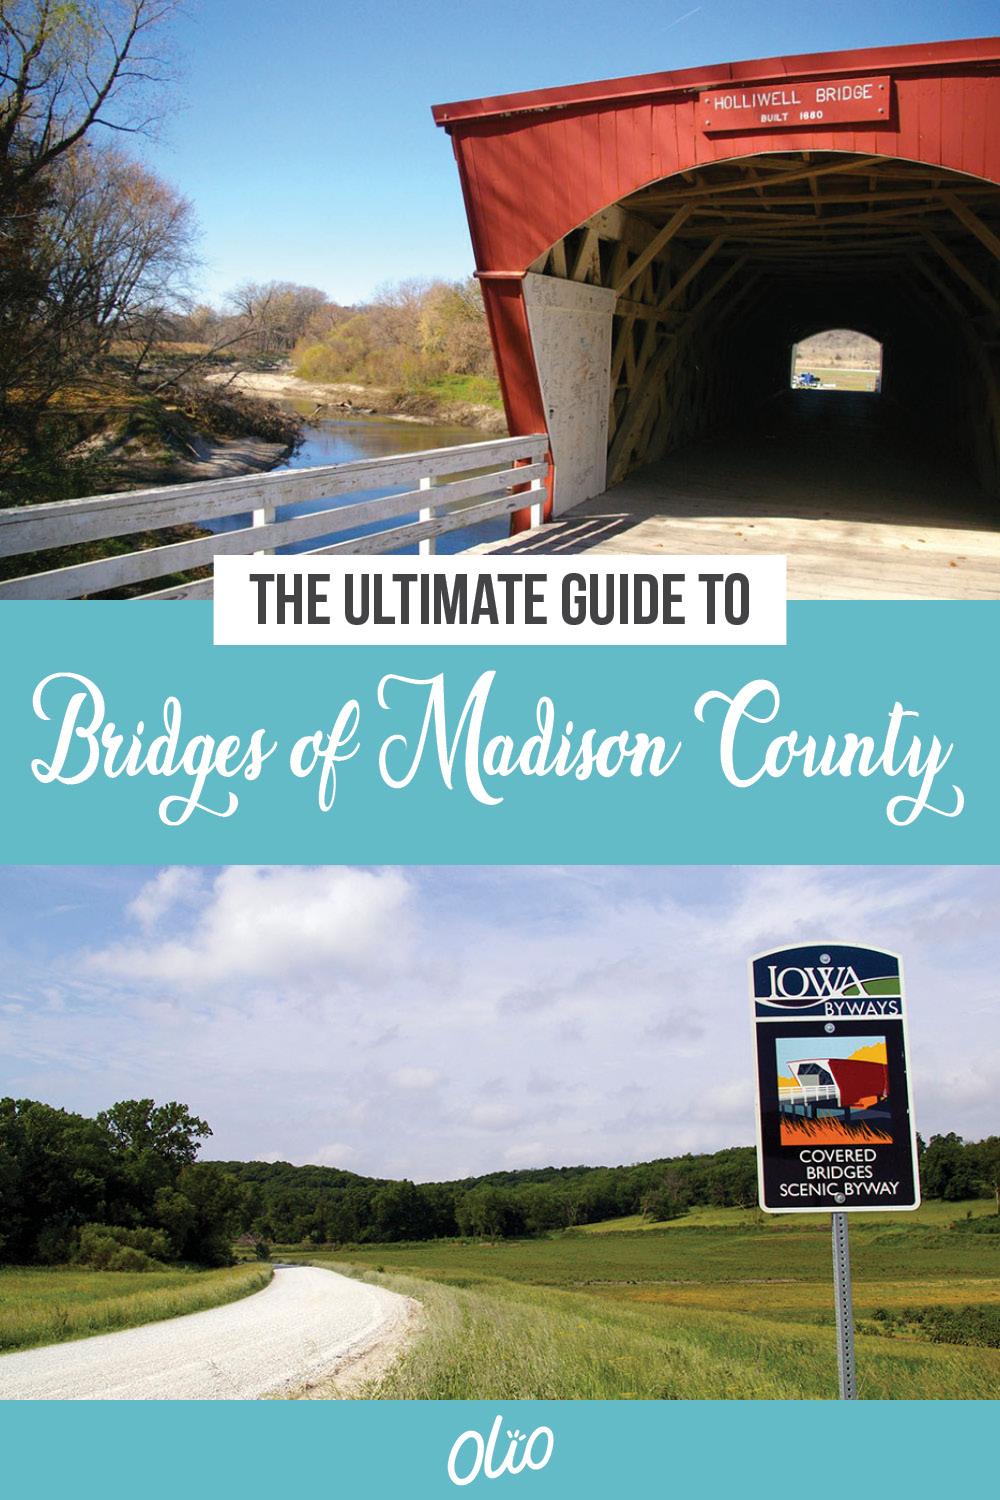 There's no better road trip than discovering Iowa's iconic Bridges of Madison County! Made famous by the 1992 book and subsequent movie starring Meryl Streep and Clint Eastwood, these historic covered bridges near Winterset, Iowa are a truly a sight to behold. Surrounded by breathtaking nature, the Bridges of Madison County are the perfect destination for families and photographers alike.